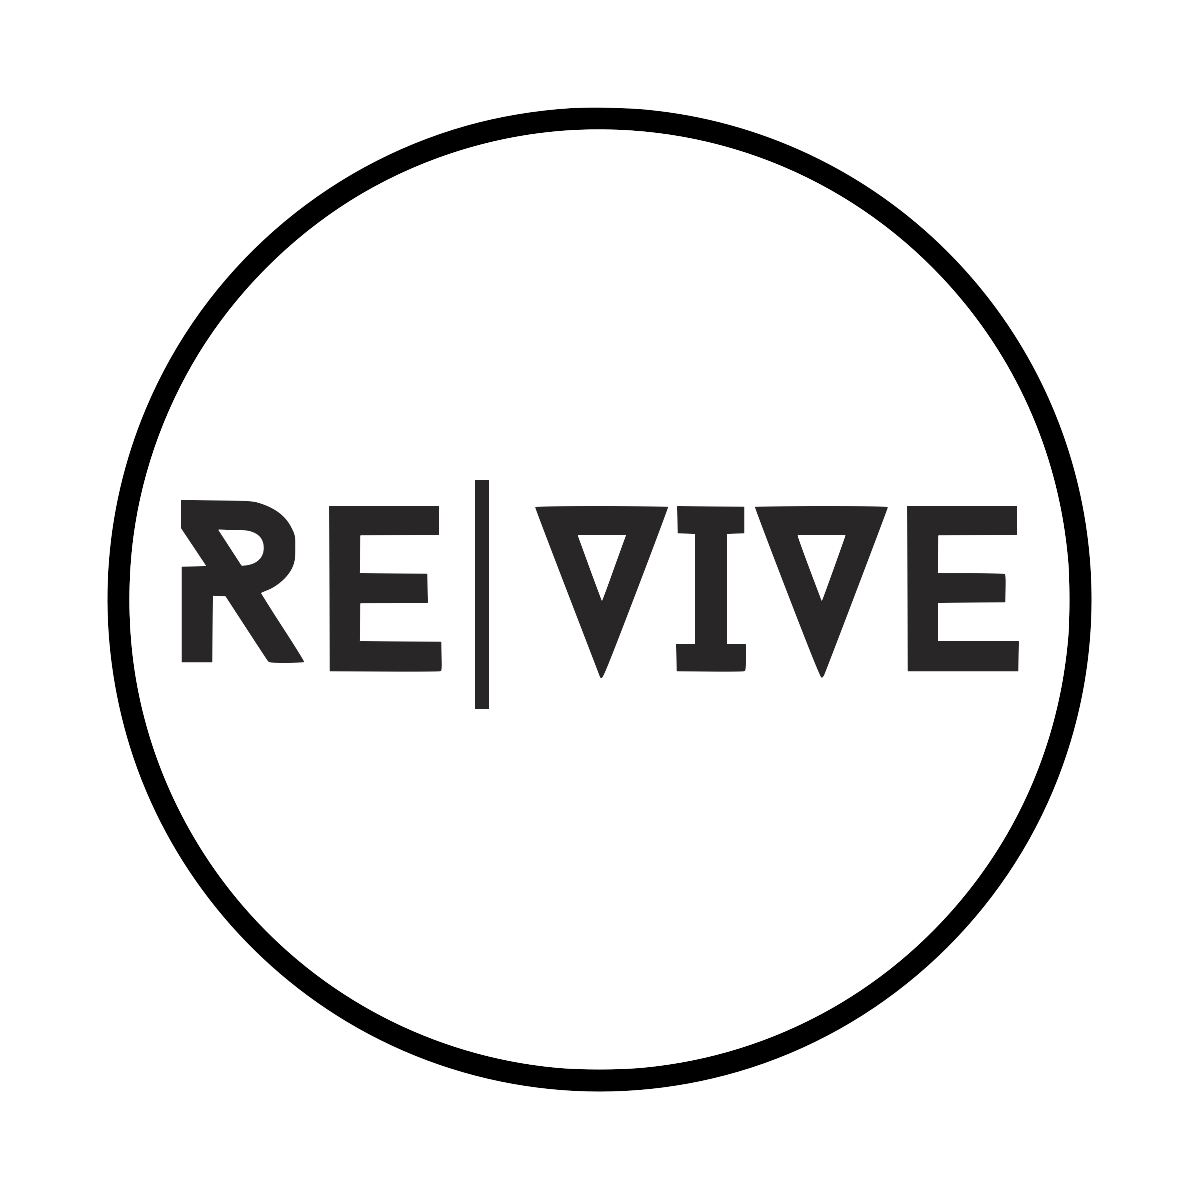 revive Logo (1).png